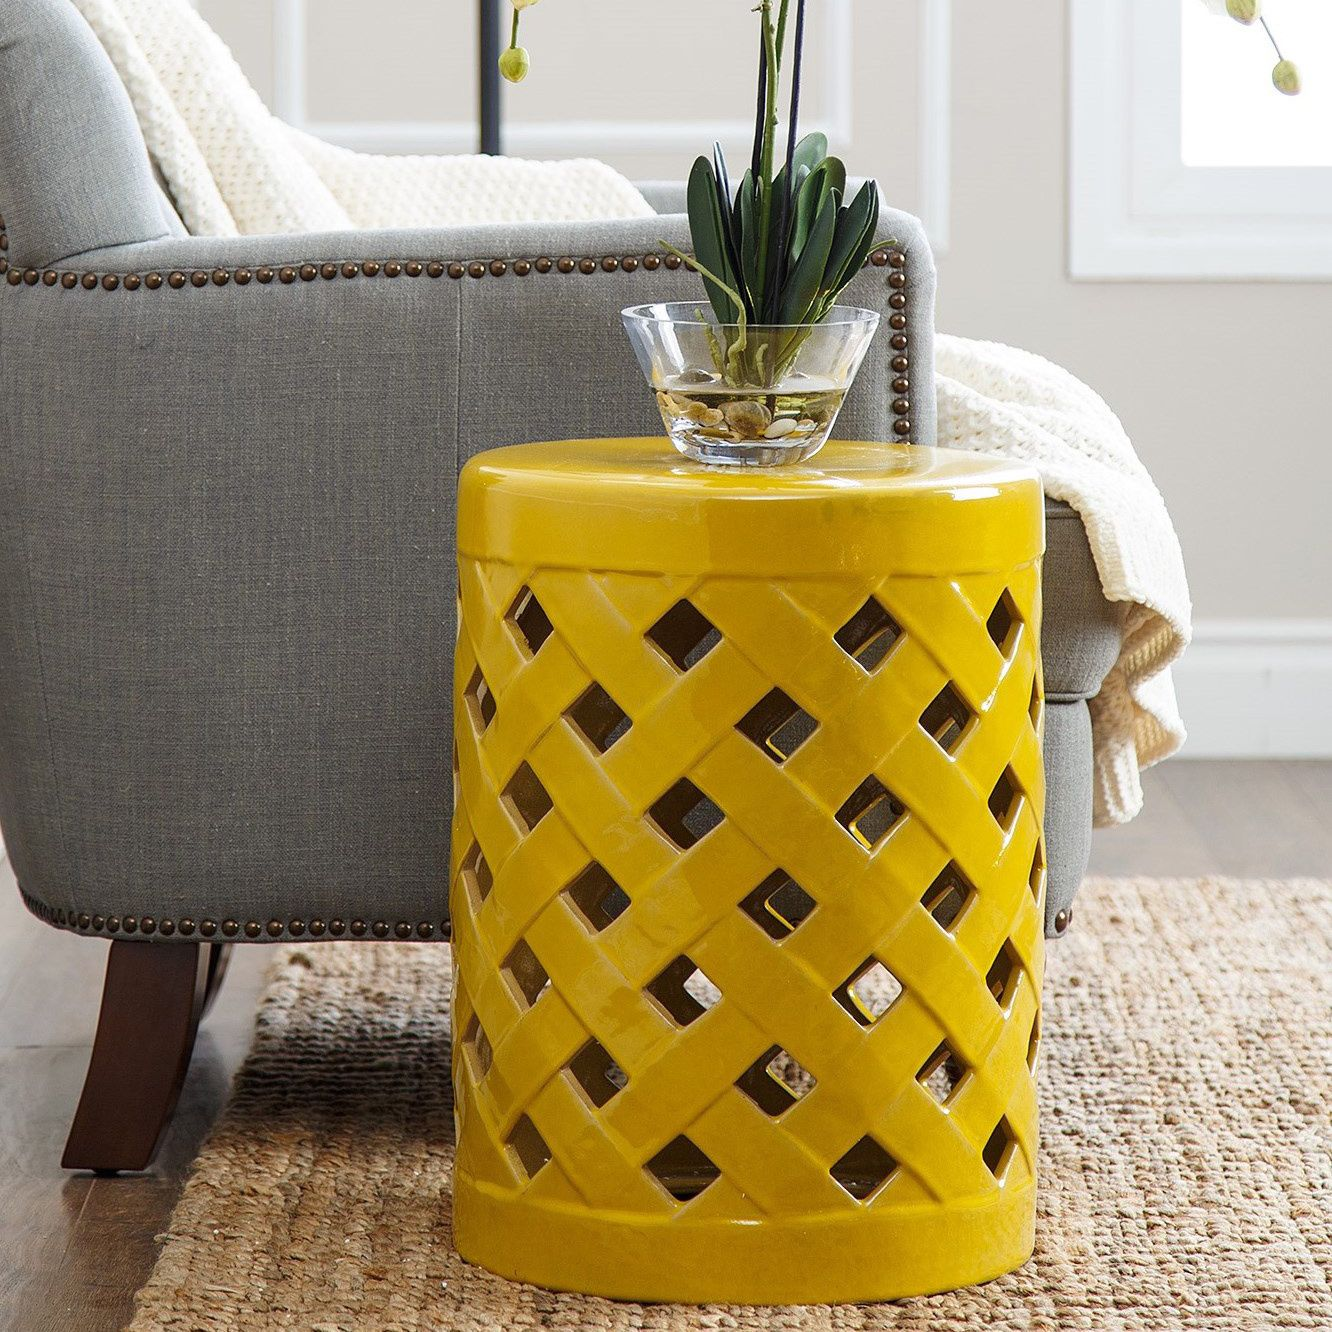 This Sunny Yellow Garden Stool Adds A Cheerful Element To Your Porch Or Patio Handy Ceramic From Abbyson Living Can Be Used Prop Up Feet